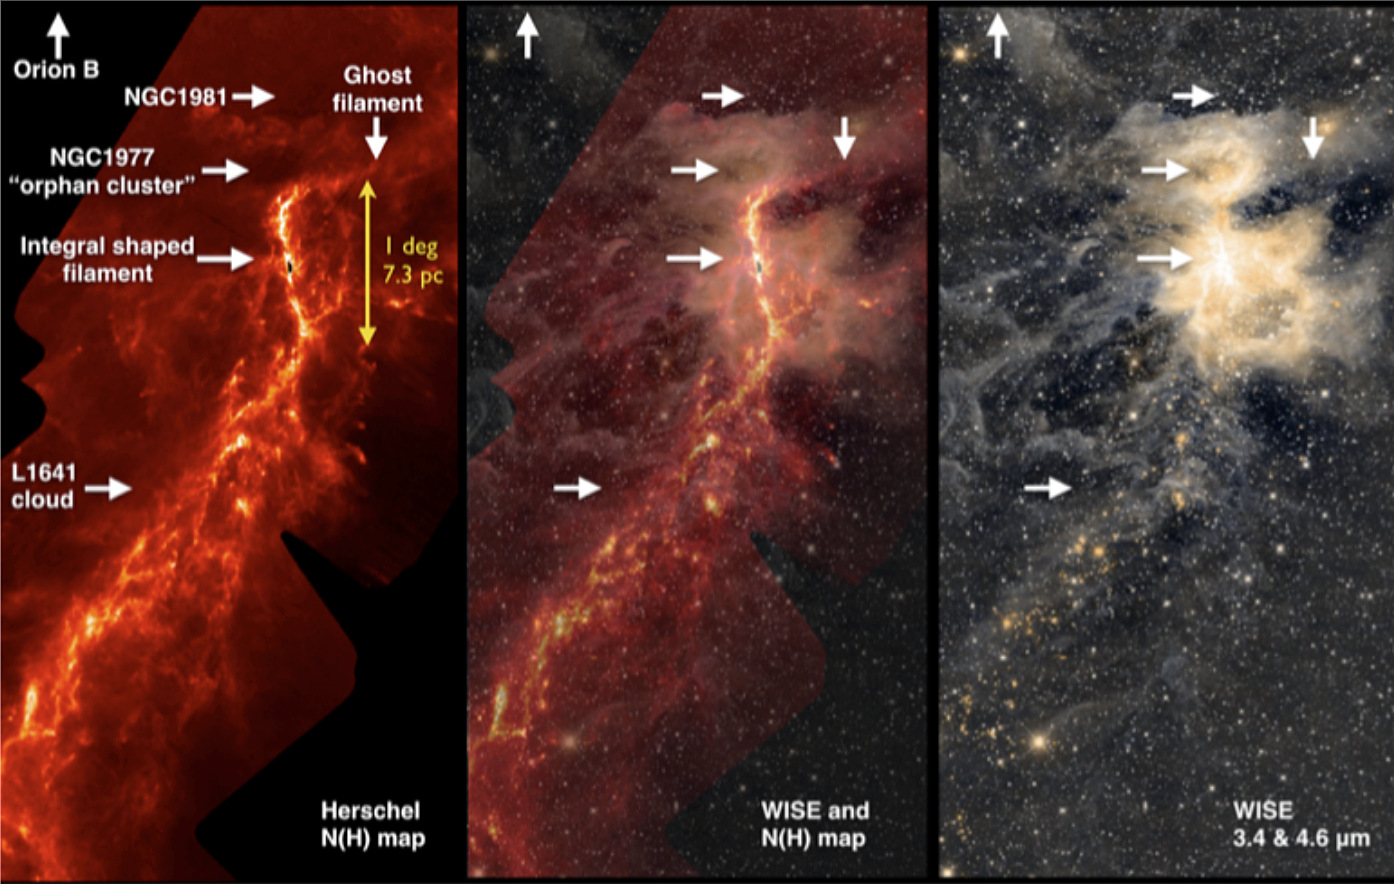 Birthplace of the stars: The integral-shaped filament, the two star clusters above the filament, and cloud L1641 in the south can be seen on these images of the OrionA star formation region. The picture on the left shows a density map compiled with data from ESA's Herschel Space Observatory, the one on the right an infrared image taken by NASA's Wide-field Infrared Survey Explorer (WISE). The photo in the centre is a combination of both images. Image credits: © A. M. Stutz / MPIA.